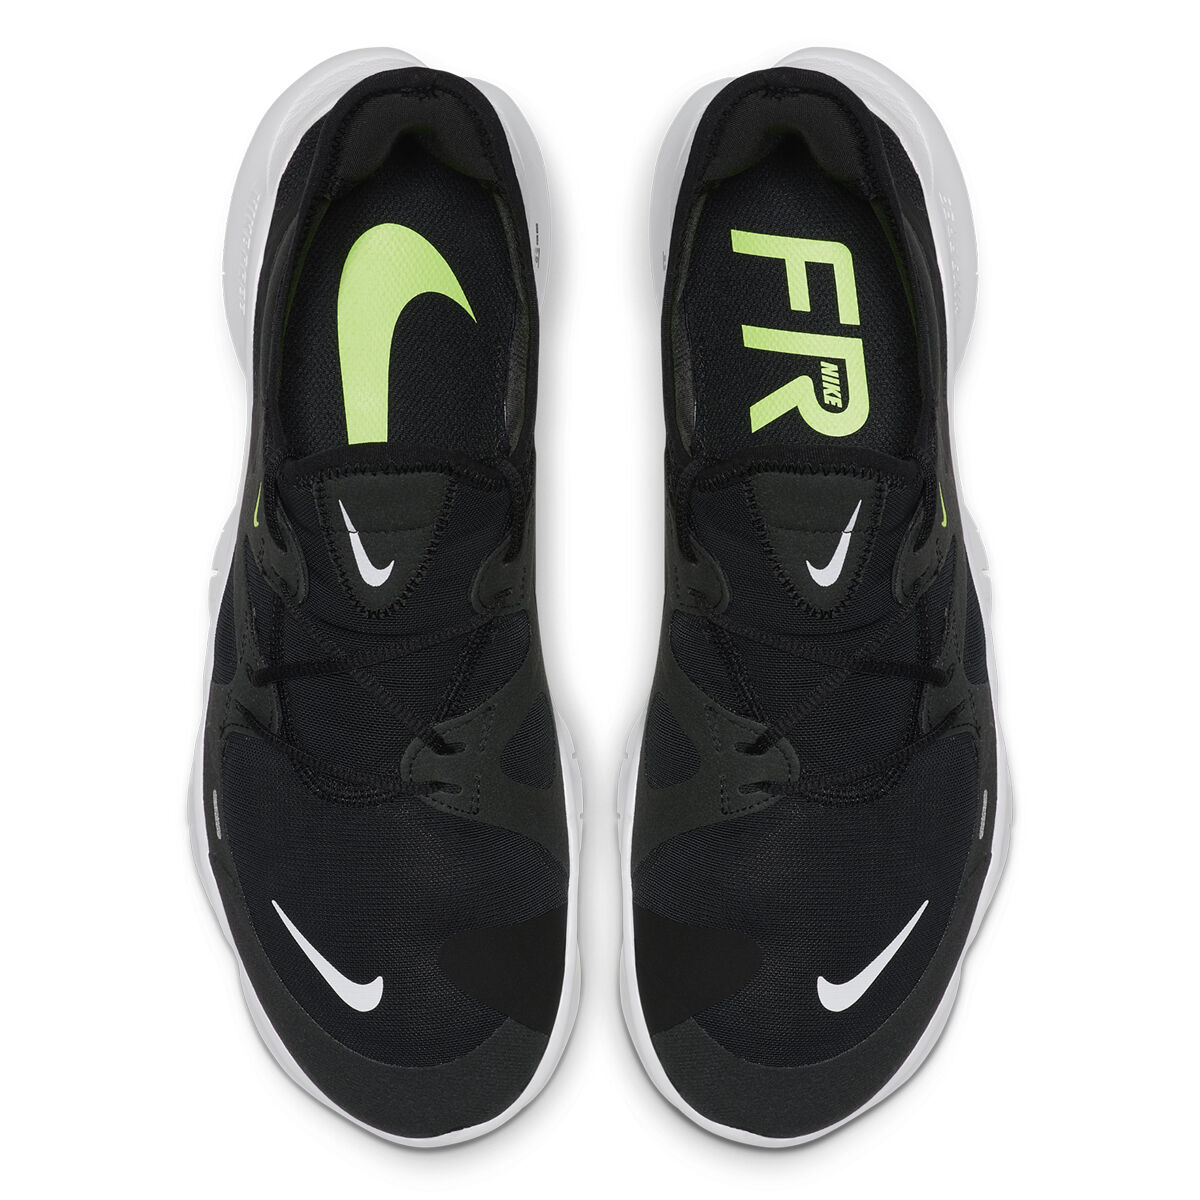 Nike Free RN 5.0 Mens Running Shoes